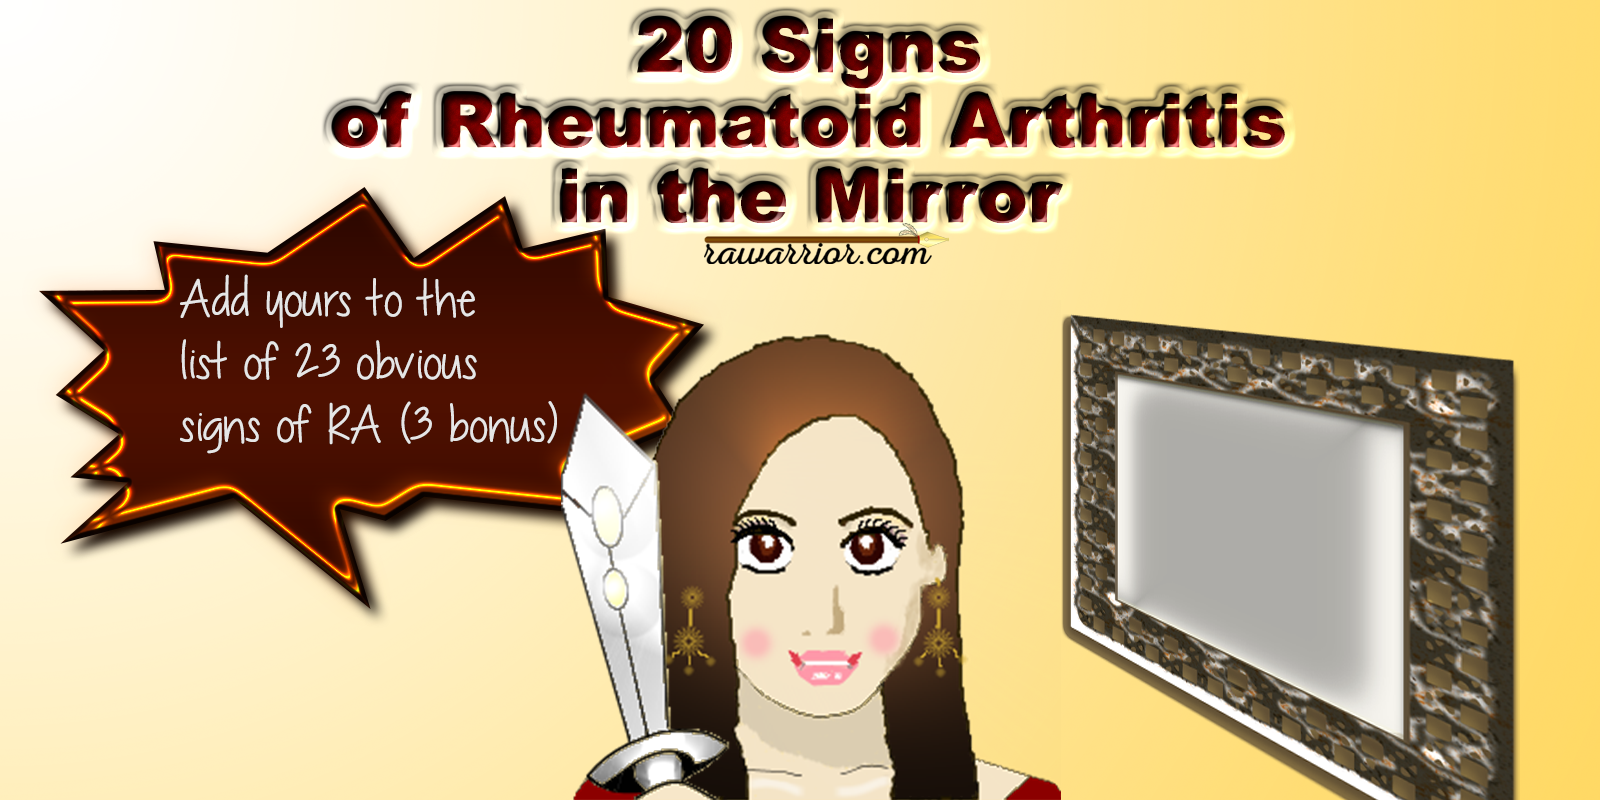 20 Signs of Rheumatoid Arthritis in the Mirror